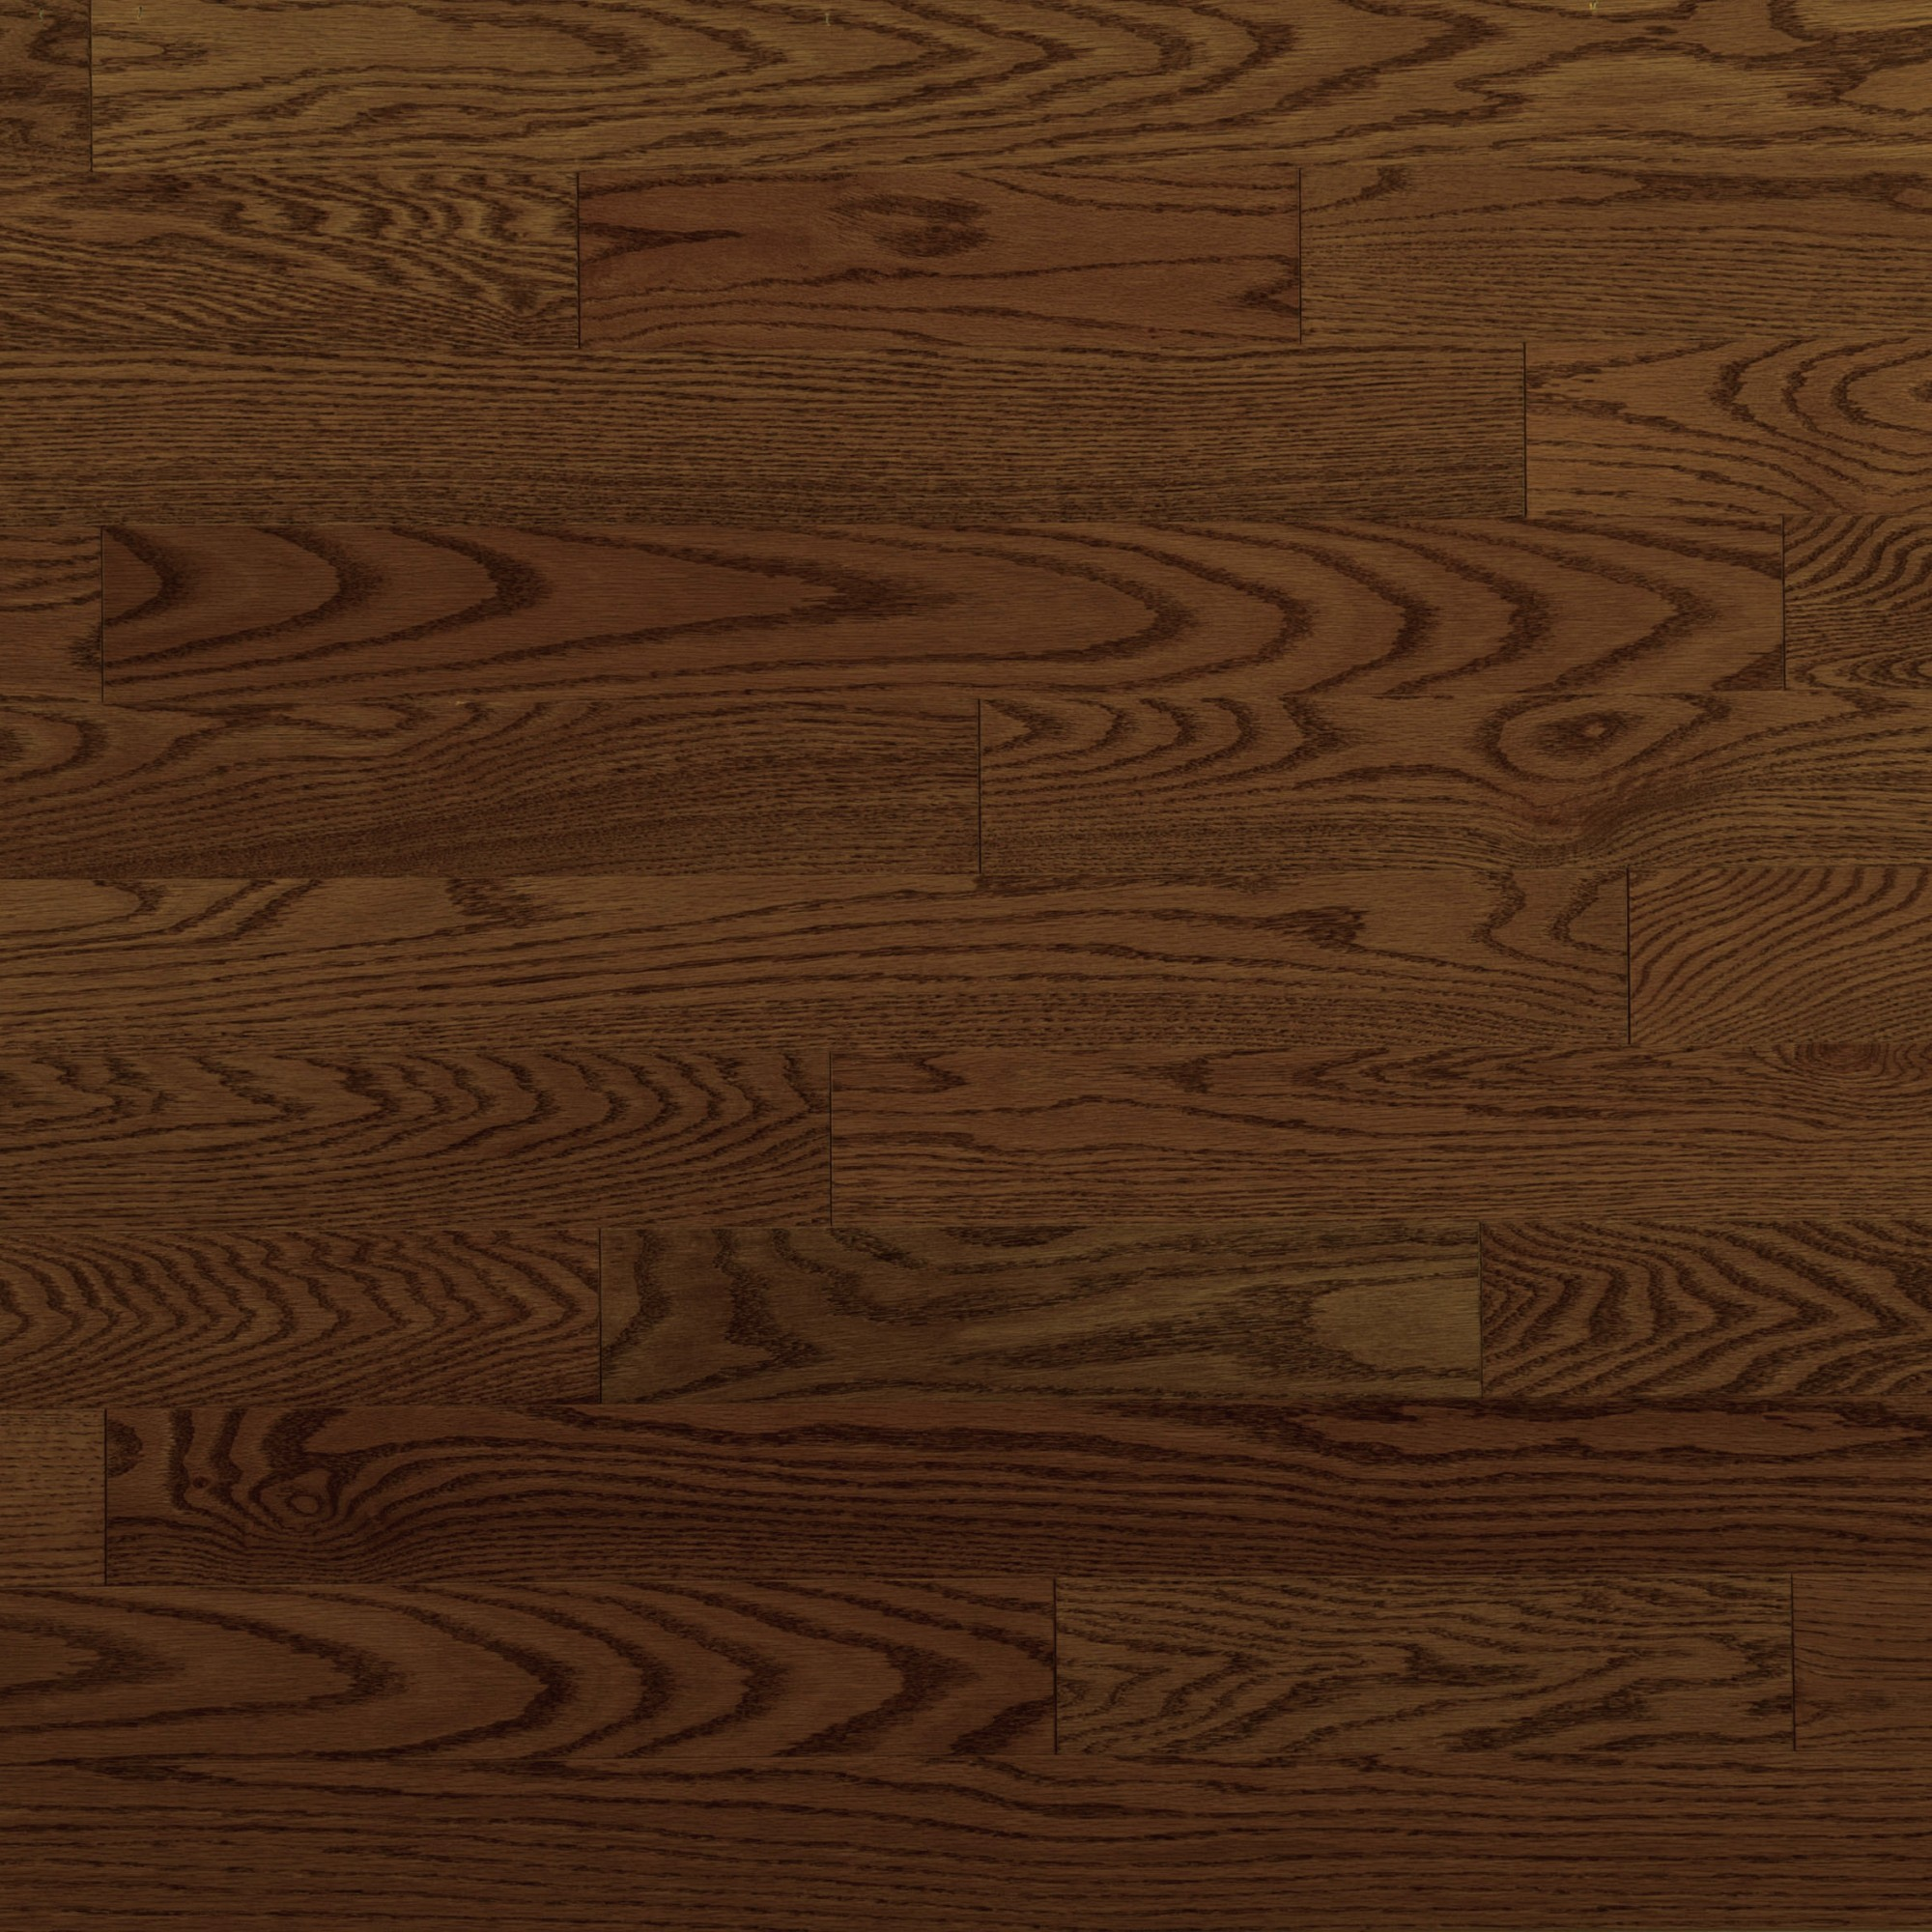 Red oak rich oak mirage hardwood floors call for special for Mirage wood floors